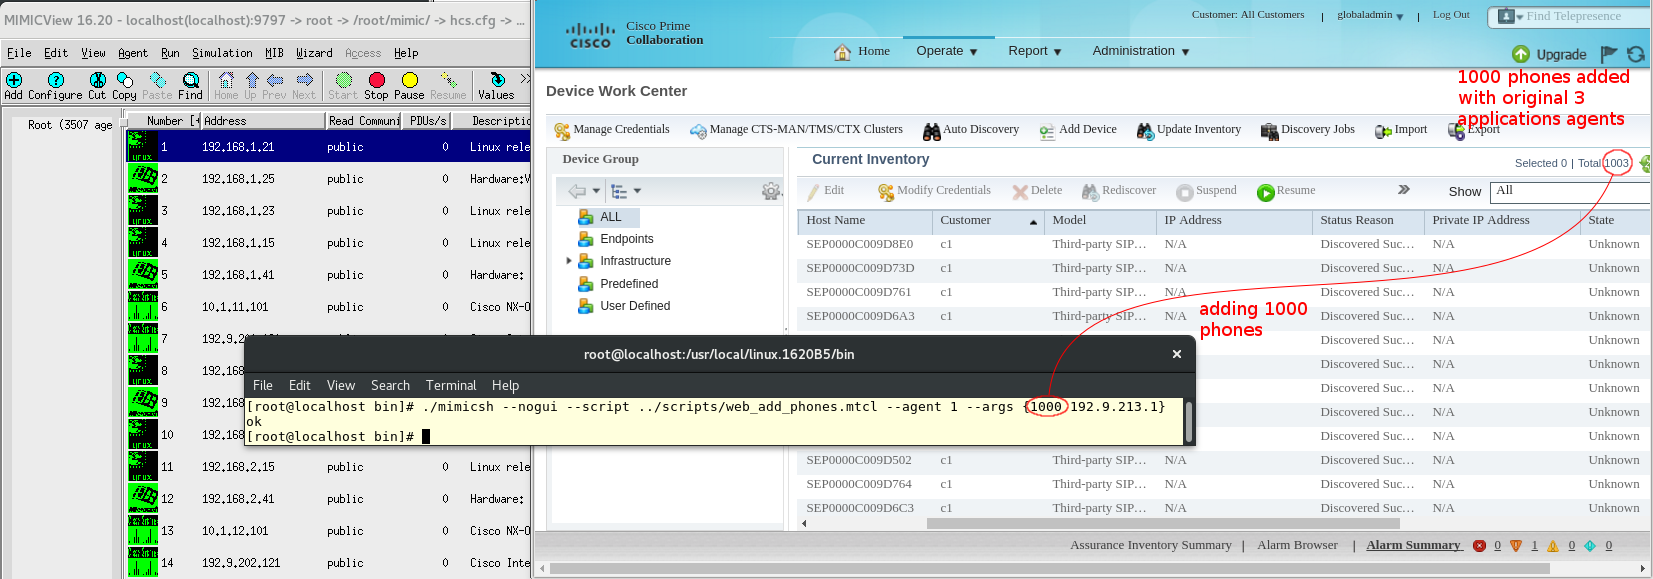 Cisco C210 UCS Server Simulation With VOIP Applications